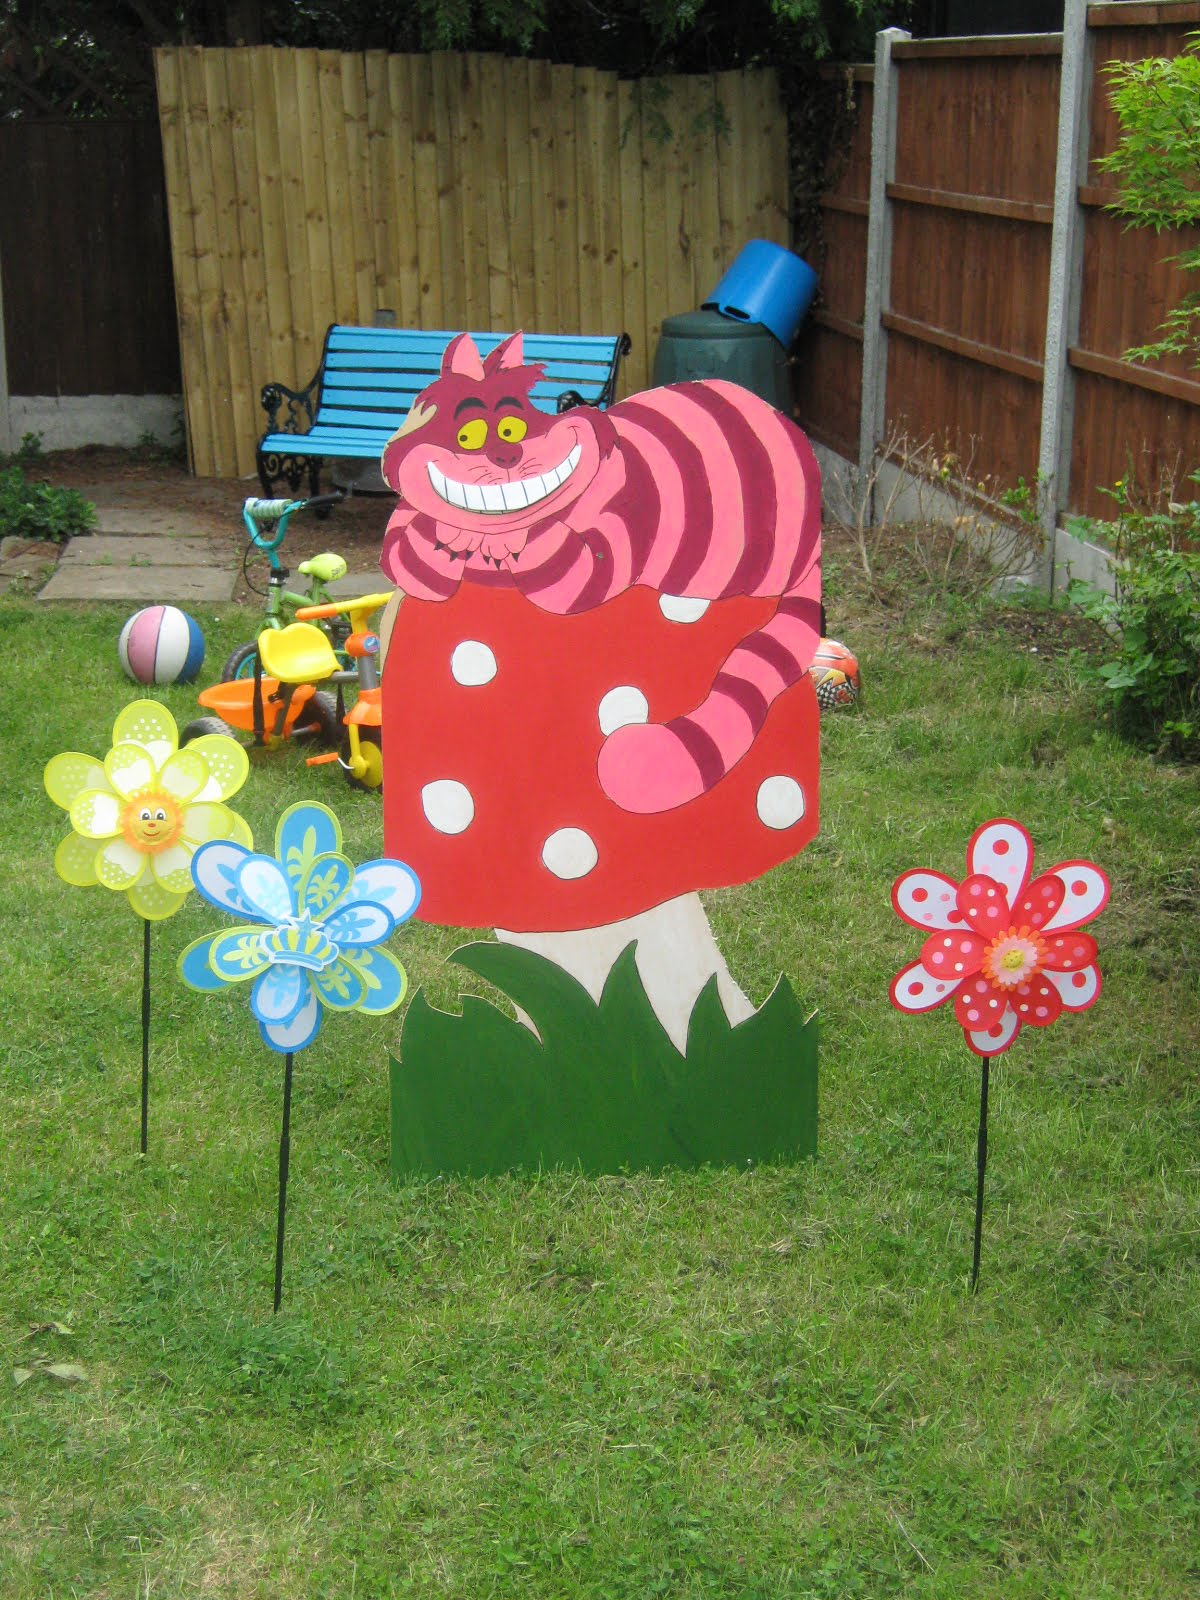 Home party ideas alice in wonderland party decorations - Alice in the wonderland party decorations ...